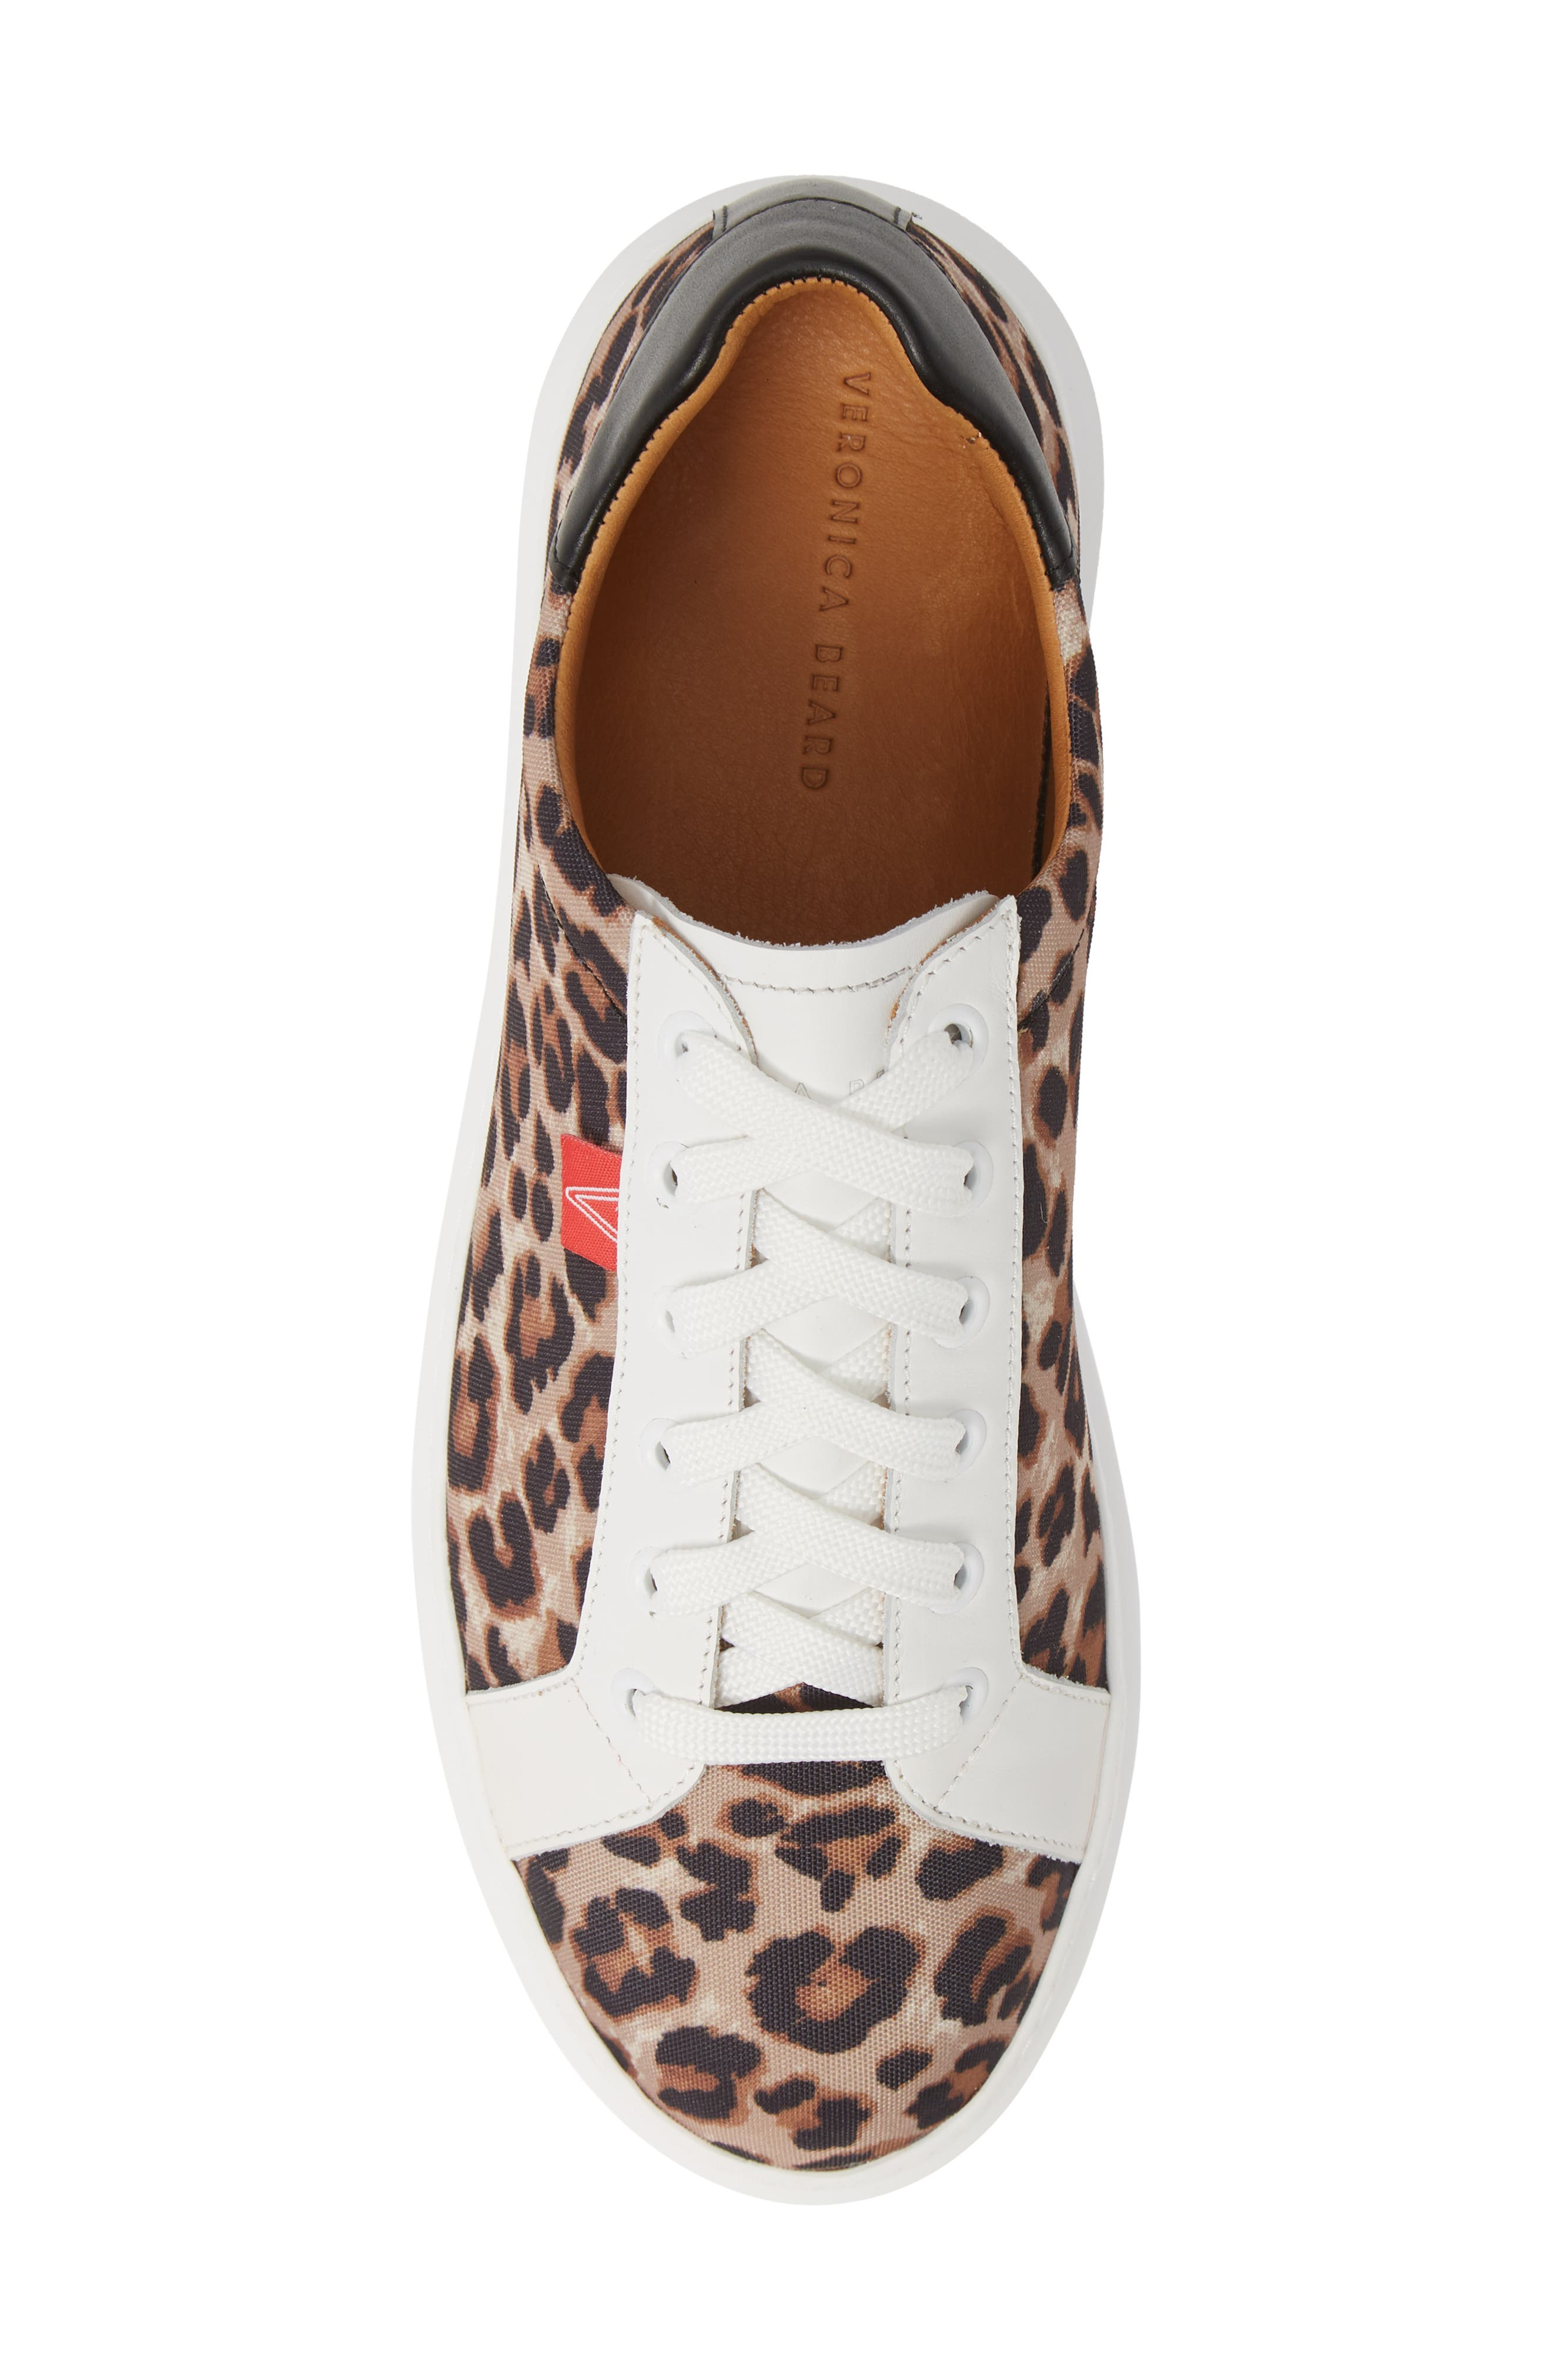 VERONICA BEARD, Daelyn Leopard Print Sneaker, Alternate thumbnail 5, color, LEOPARD